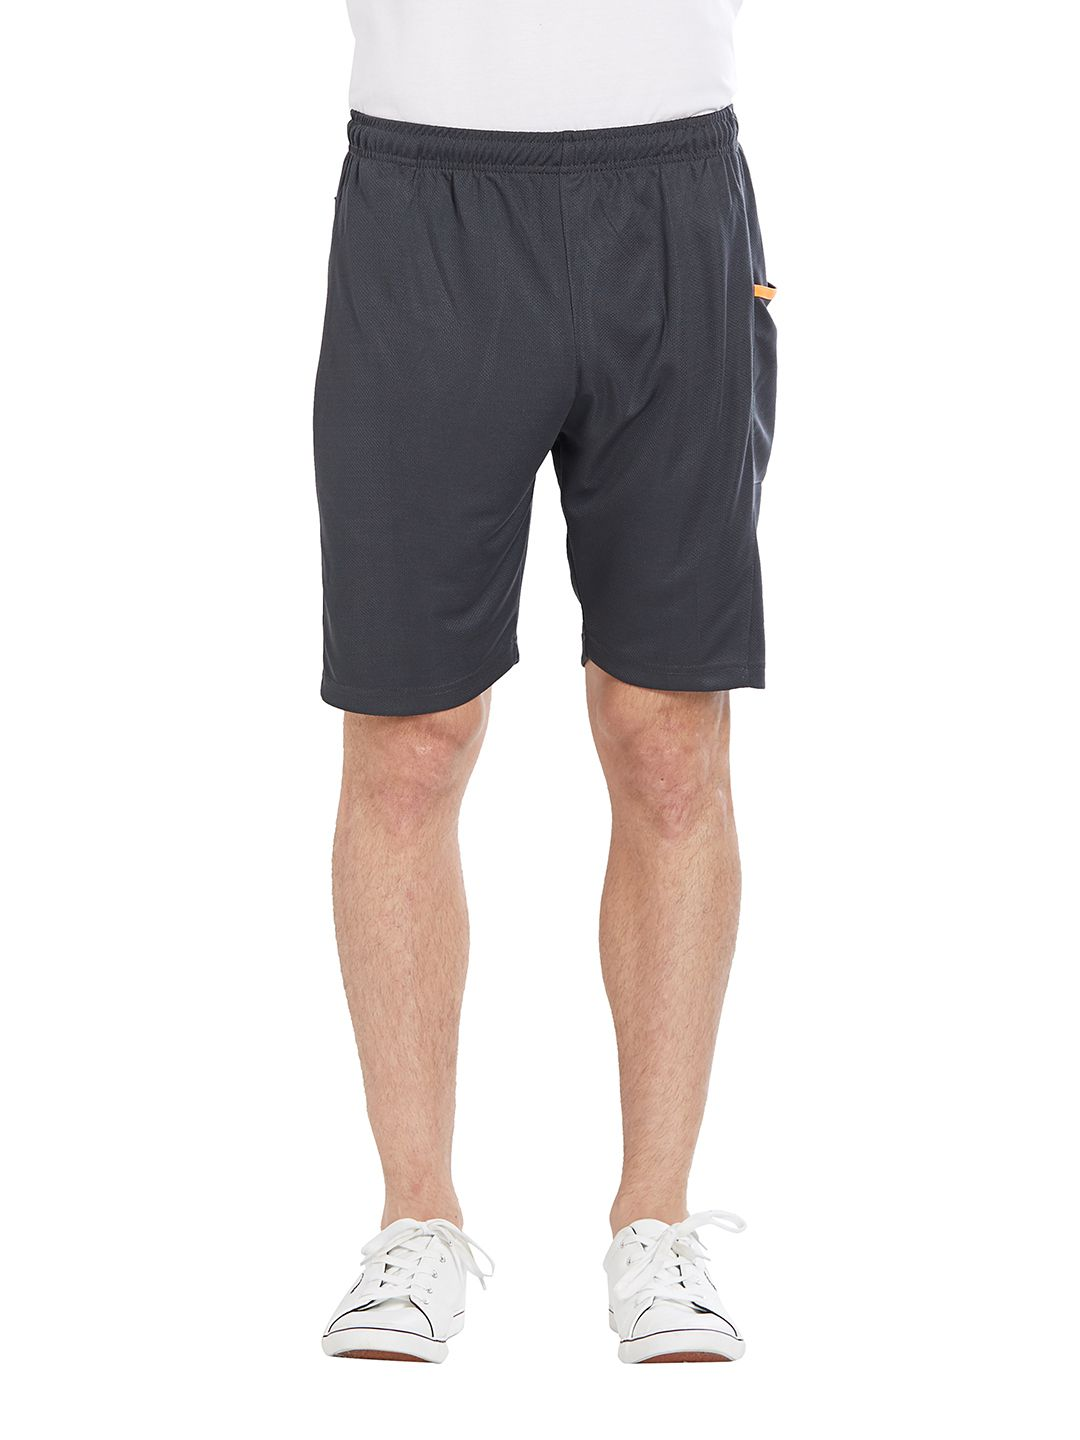 BONATY Dark Grey 100% Polyester Solid  Shorts For Men